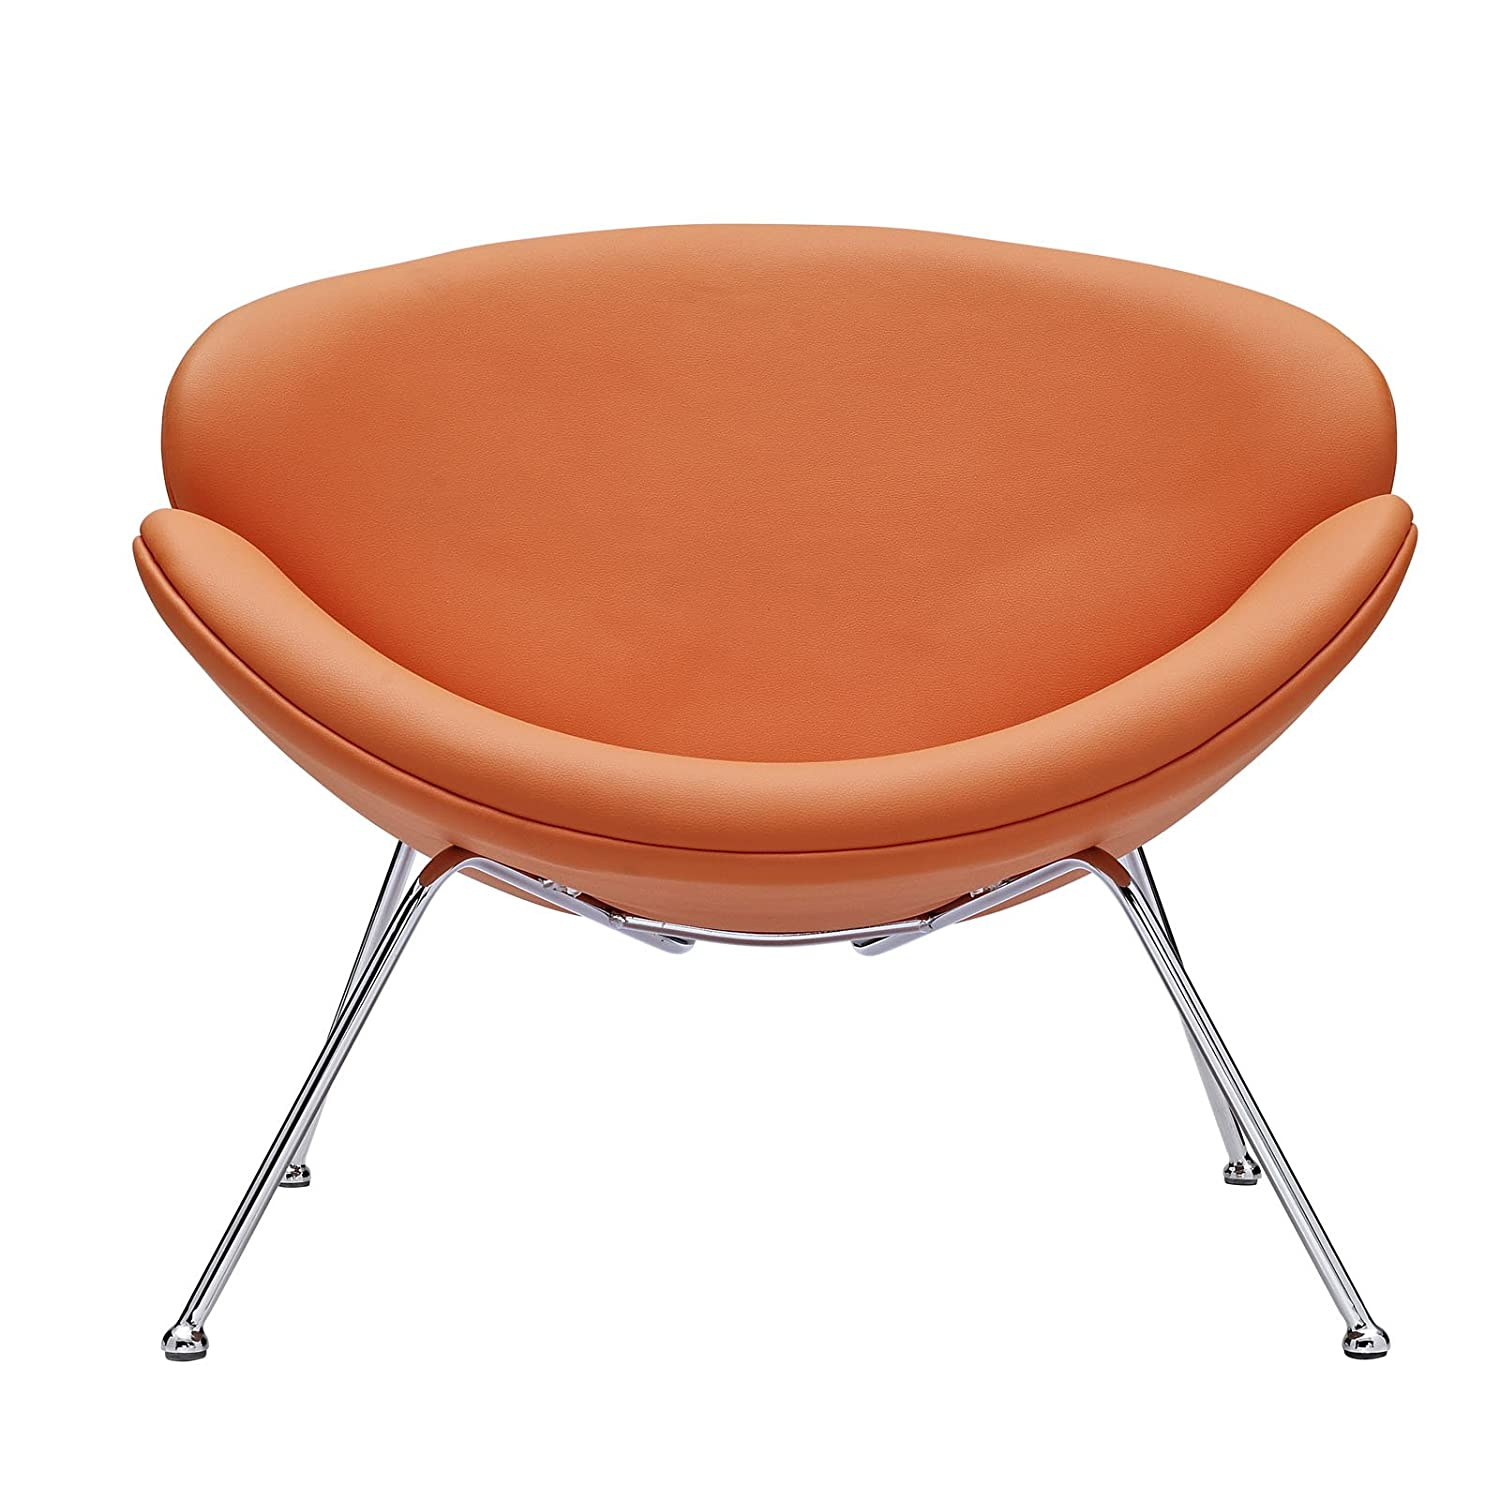 Amazon Modway Nutshell Mid Century Style Lounge Chair in